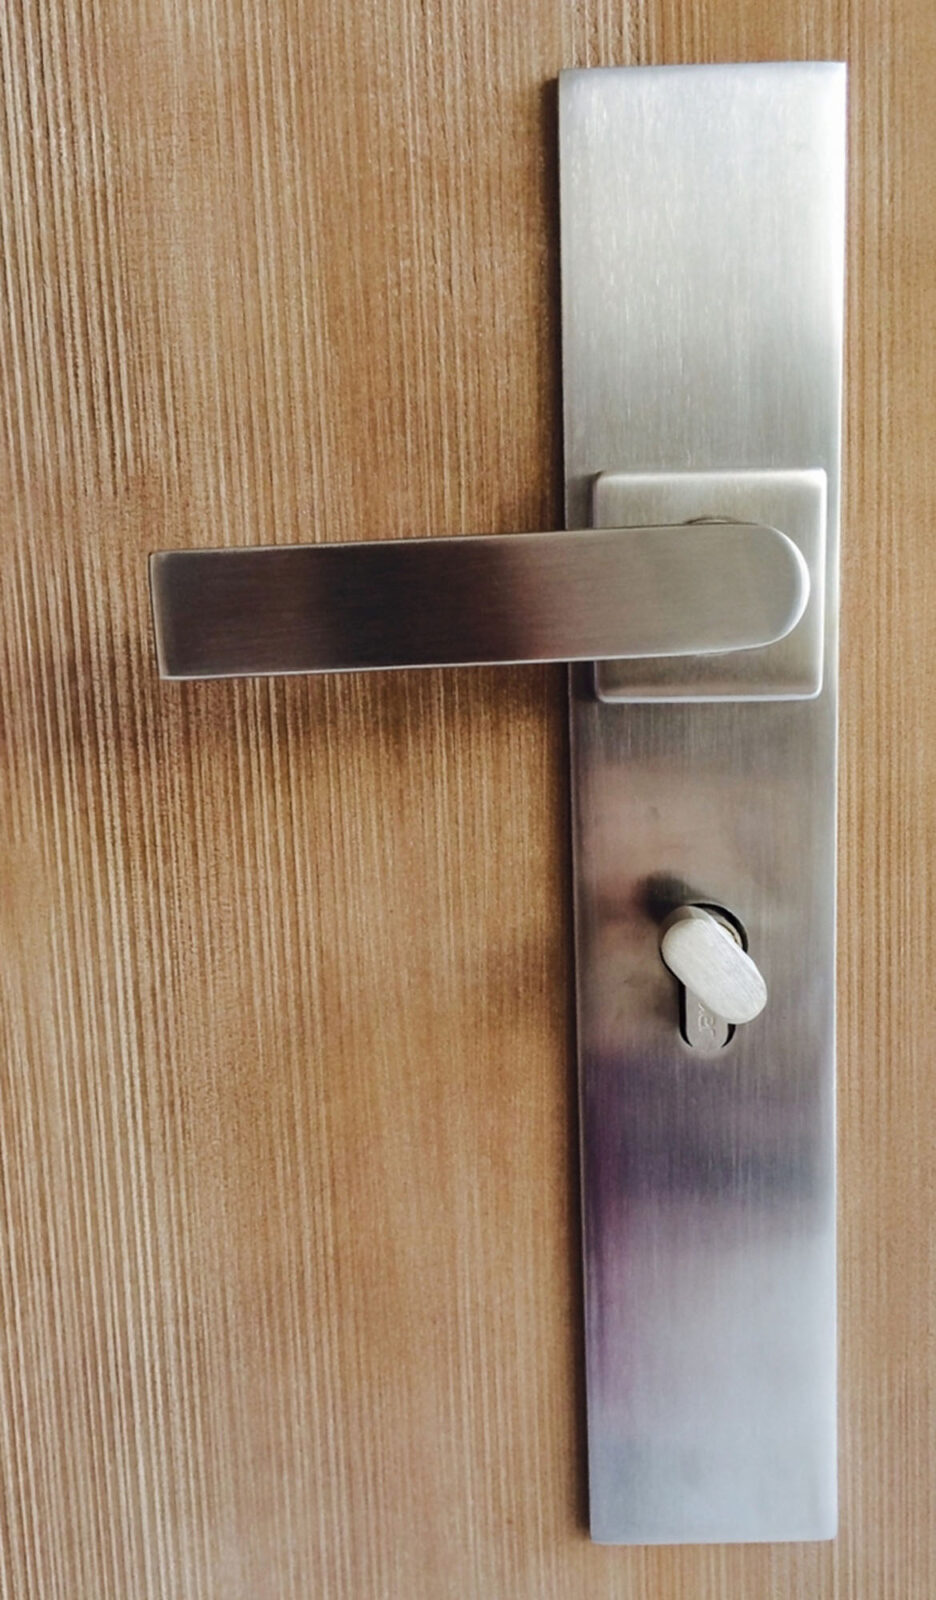 STAINLESS STEEL PAMPA HANDLES